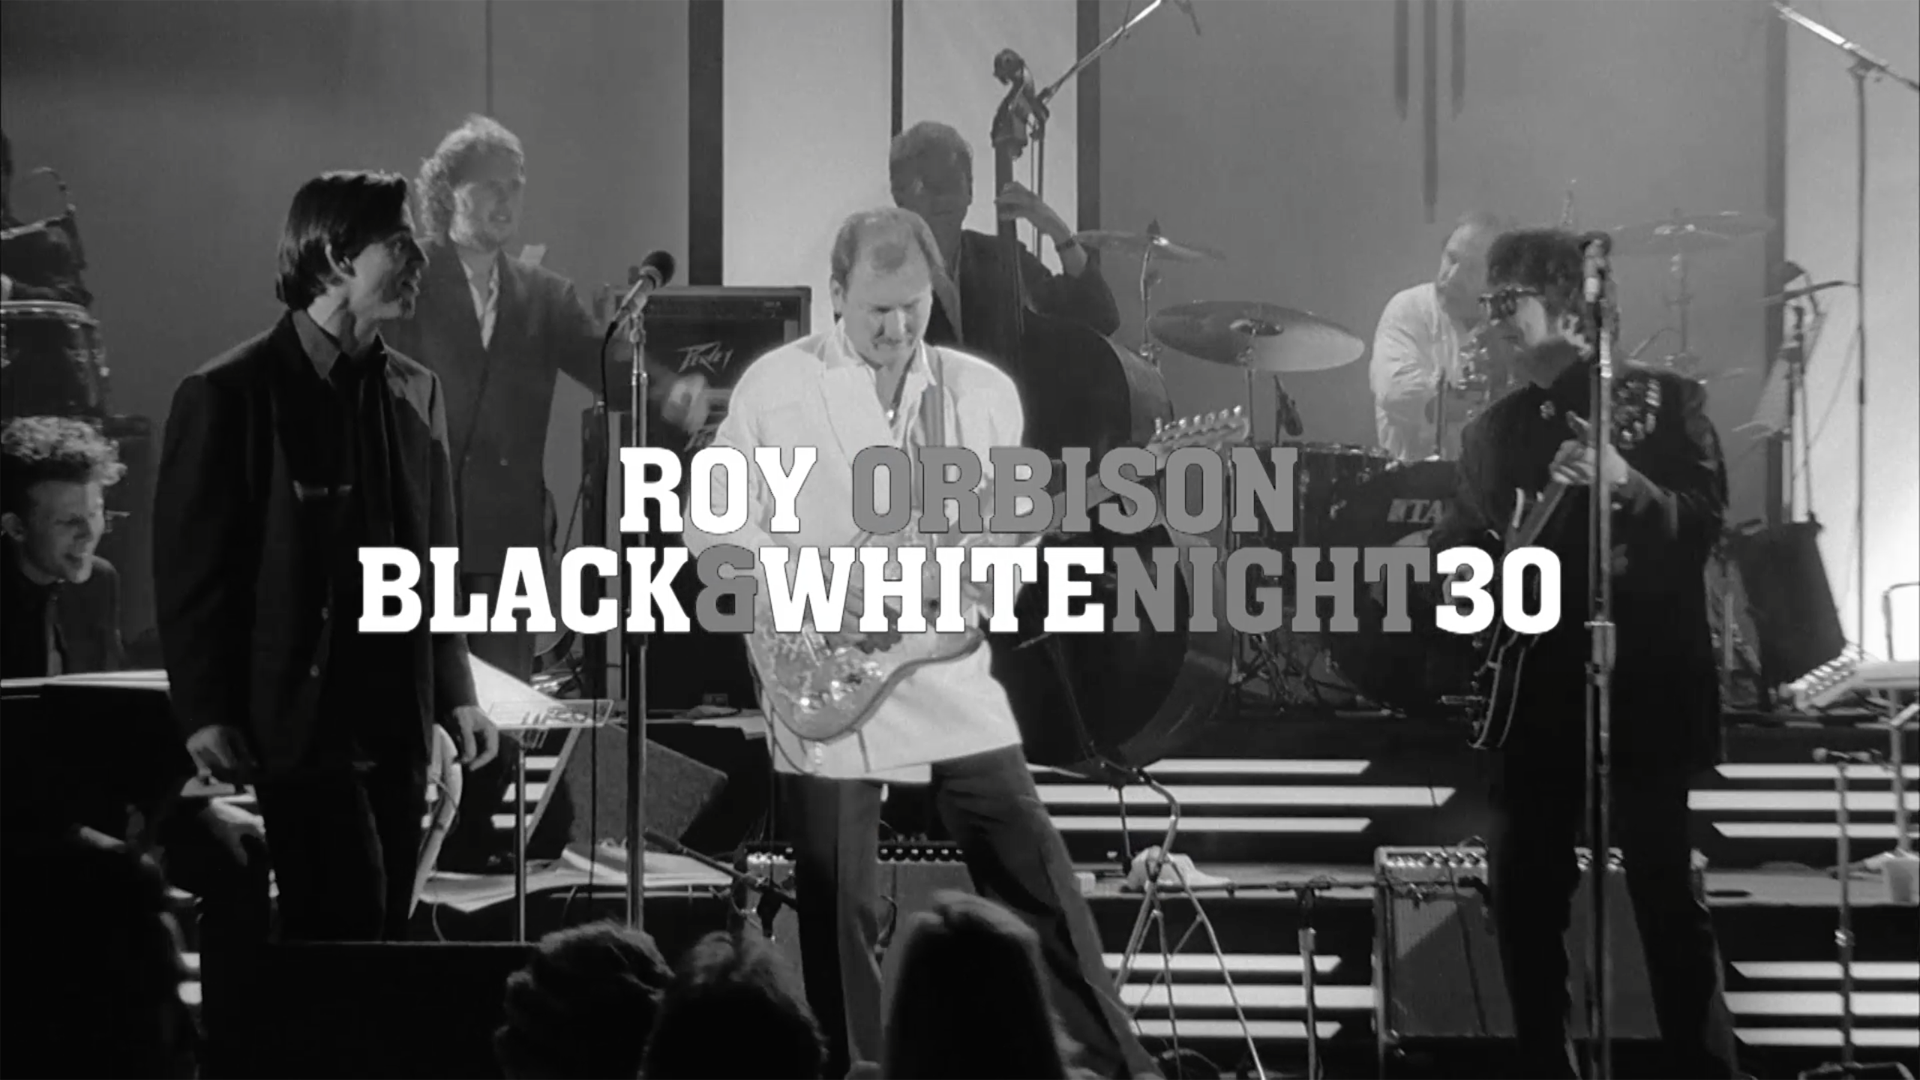 ROY ORBISON: BLACK & WHITE NIGHT 30